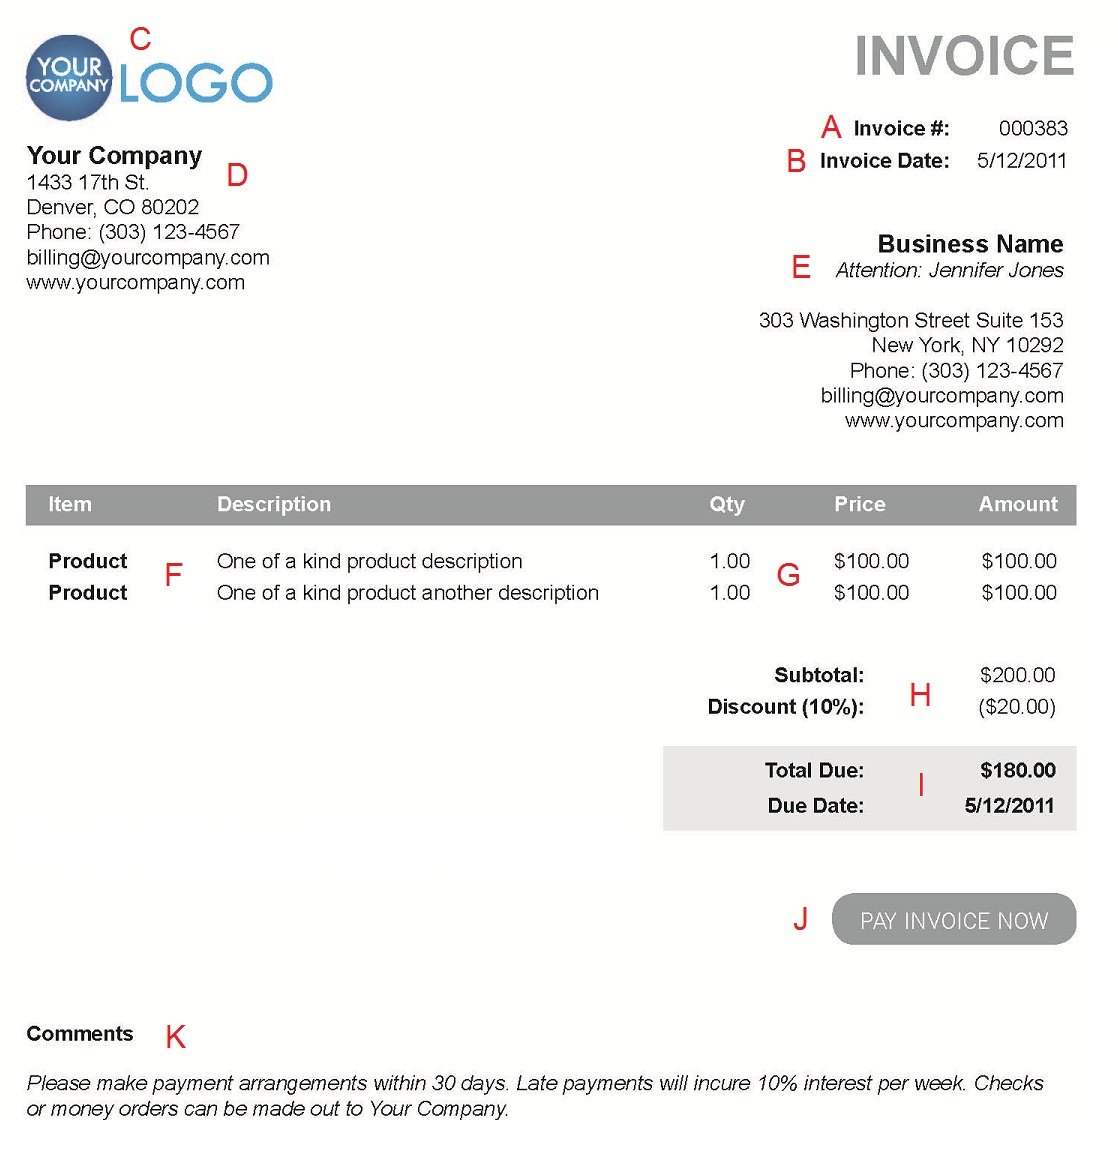 Atvingus  Outstanding The  Different Sections Of An Electronic Payment Invoice With Goodlooking A  With Astonishing Ballpark Invoicing Also Pro Forma Vat Invoice In Addition Simple Invoice Format In Word And Invoice Pages Template As Well As Customer Invoice Template Excel Additionally Interest On Late Payment Of Invoices From Paysimplecom With Atvingus  Goodlooking The  Different Sections Of An Electronic Payment Invoice With Astonishing A  And Outstanding Ballpark Invoicing Also Pro Forma Vat Invoice In Addition Simple Invoice Format In Word From Paysimplecom